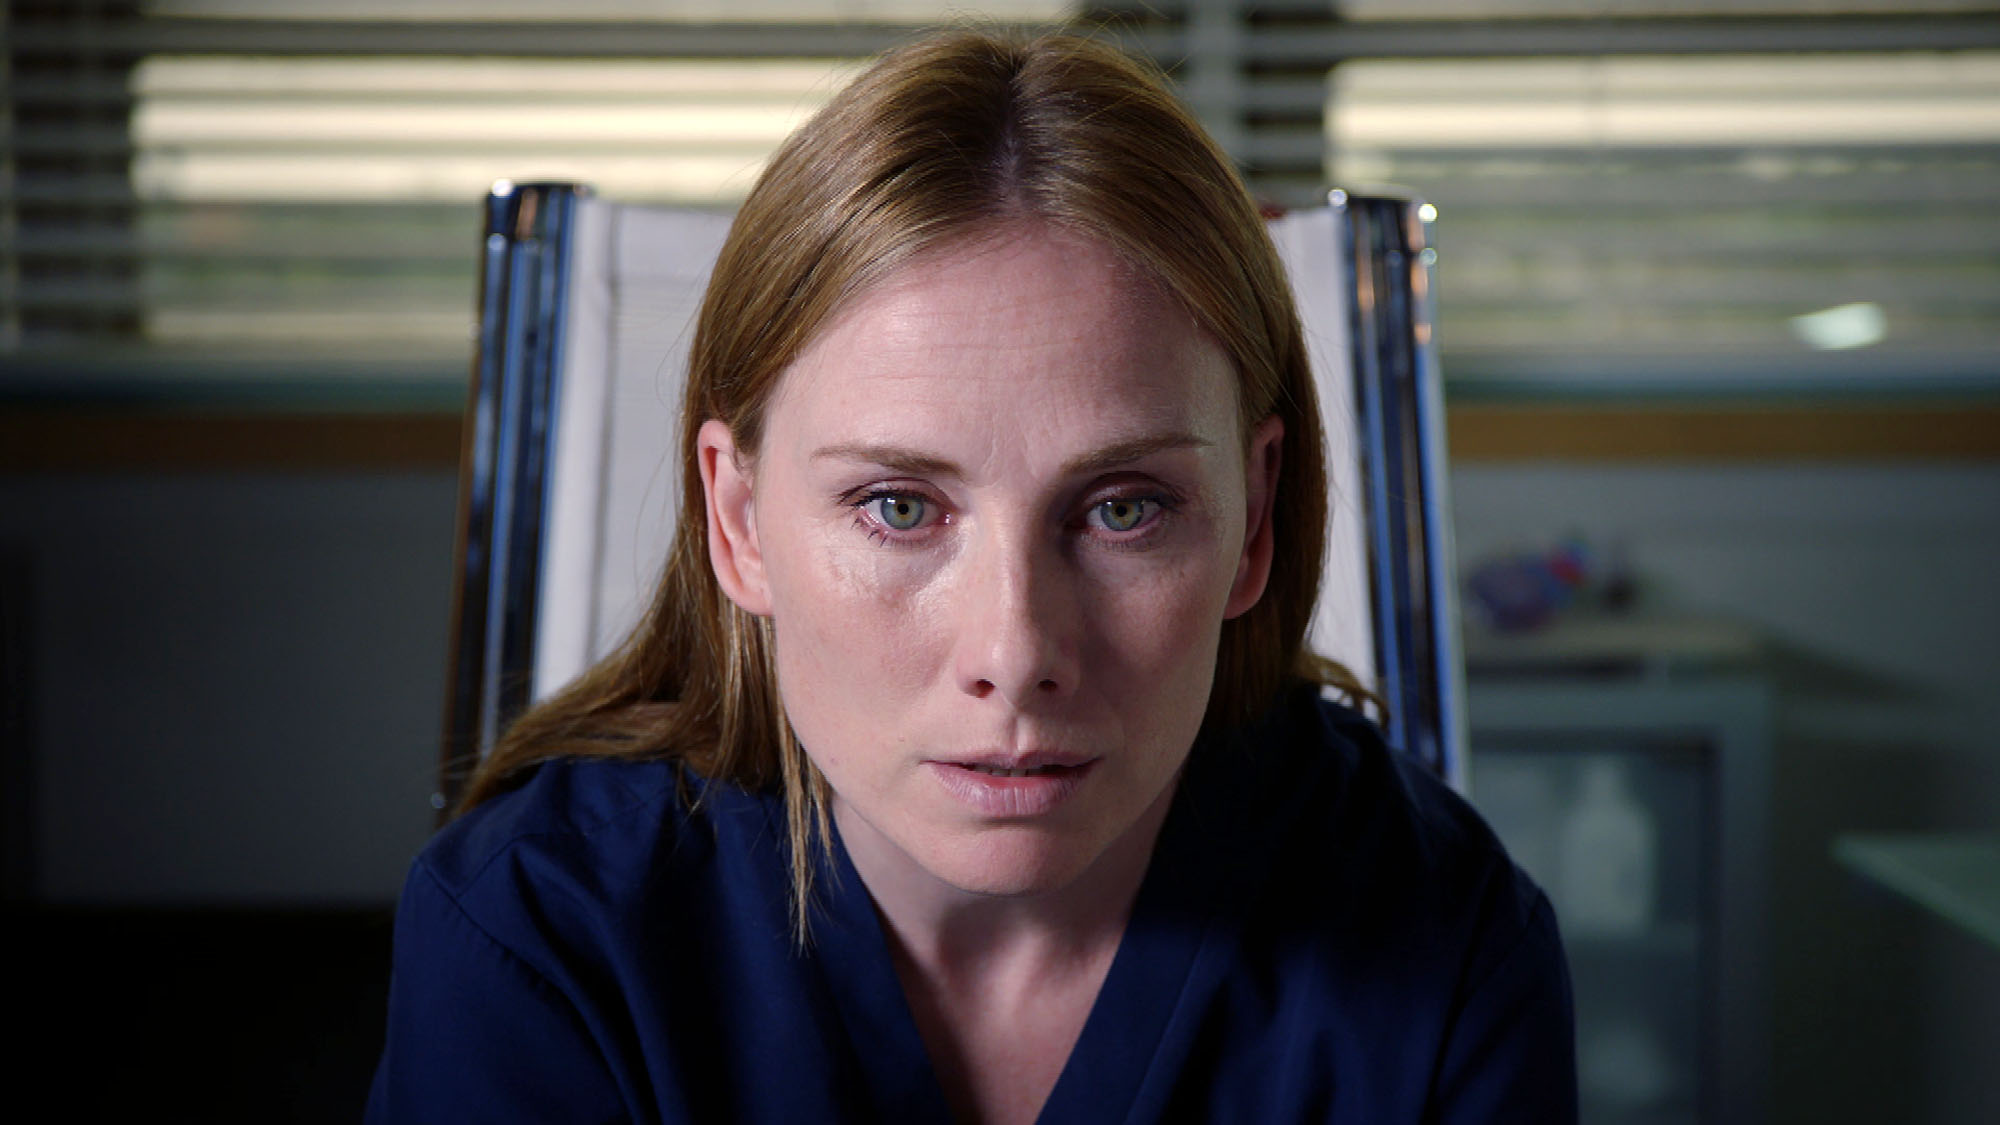 Holby City's Jac Naylor is heading to Casualty!